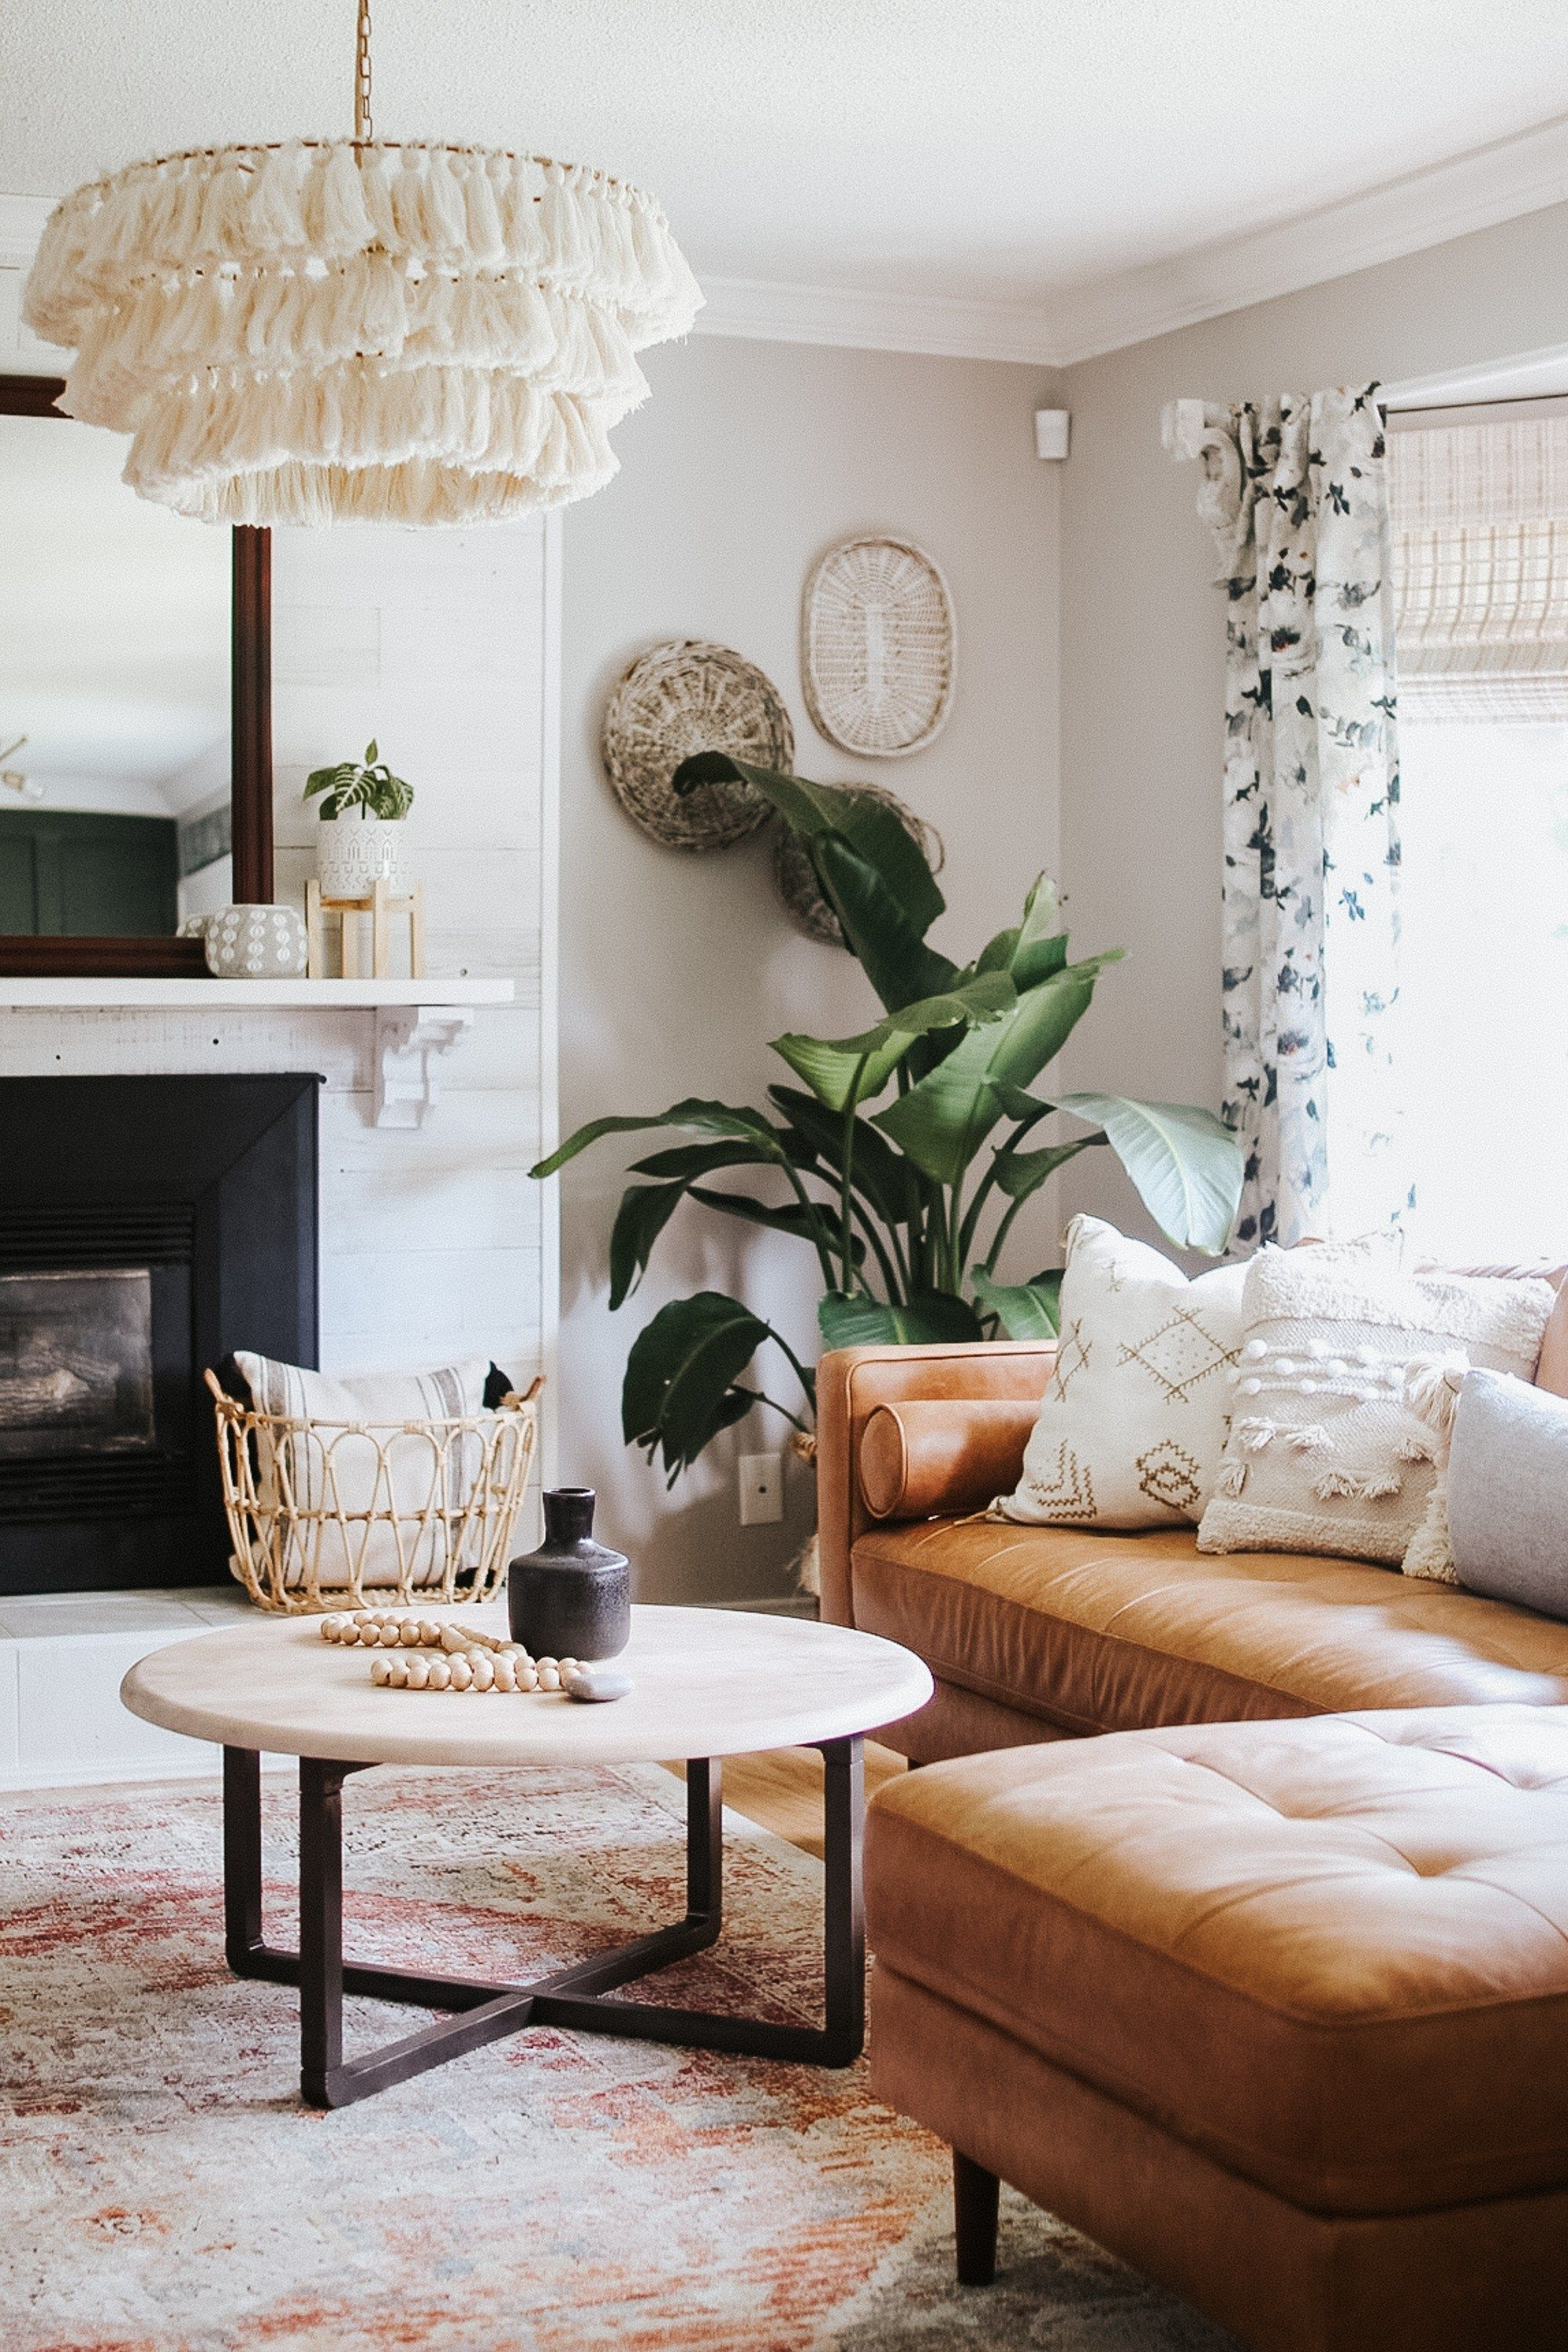 Modern Bohemian Farmhouse Living Room [ Before + After ] - Jessica Sara Morris -  Hey! I just wanted to pop on to the blog not only to update you on how I'm fairing the last few w - #besteneinrichtungstips #Bohemian #eichrichtungstipps #einrichten #einrichtung #einrichtungsideen #einrichtungstipp #einrichtungstipps #einrichtungstipps2018 #einrichtungstippsfürdenherbst #einrichtungstippsfürkleine #einrichtungstippsfürminecraft #einrichtungstippswohnzimmer #Farmhouse #ikeaeinrichtungstipps #inspi